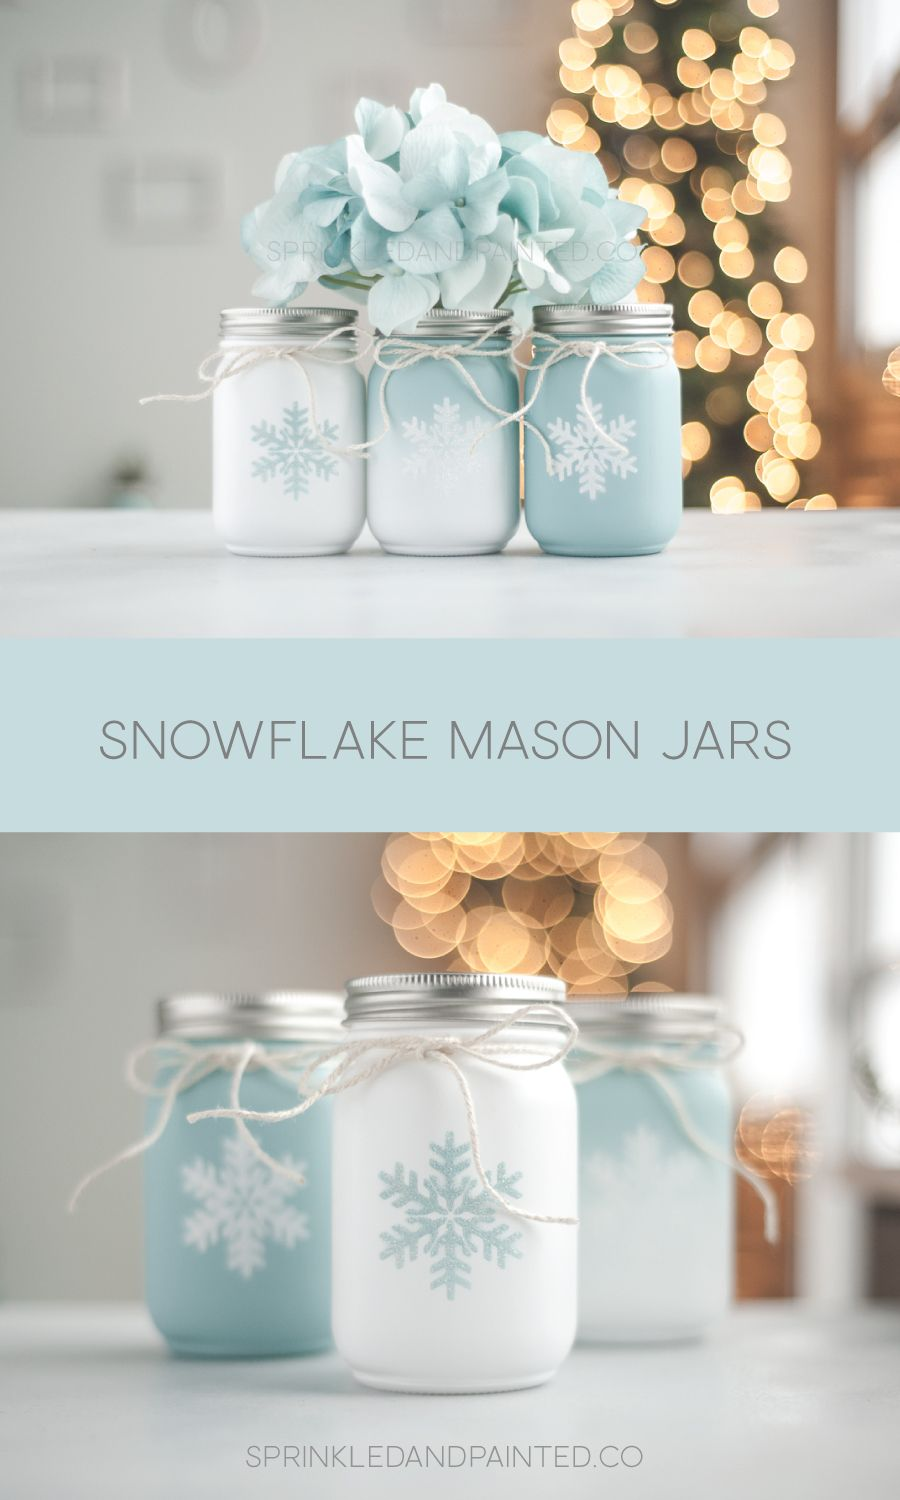 Snowflake Mason Jars Diy Jar Crafts Holiday Mason Jar Mason Jar Crafts Diy